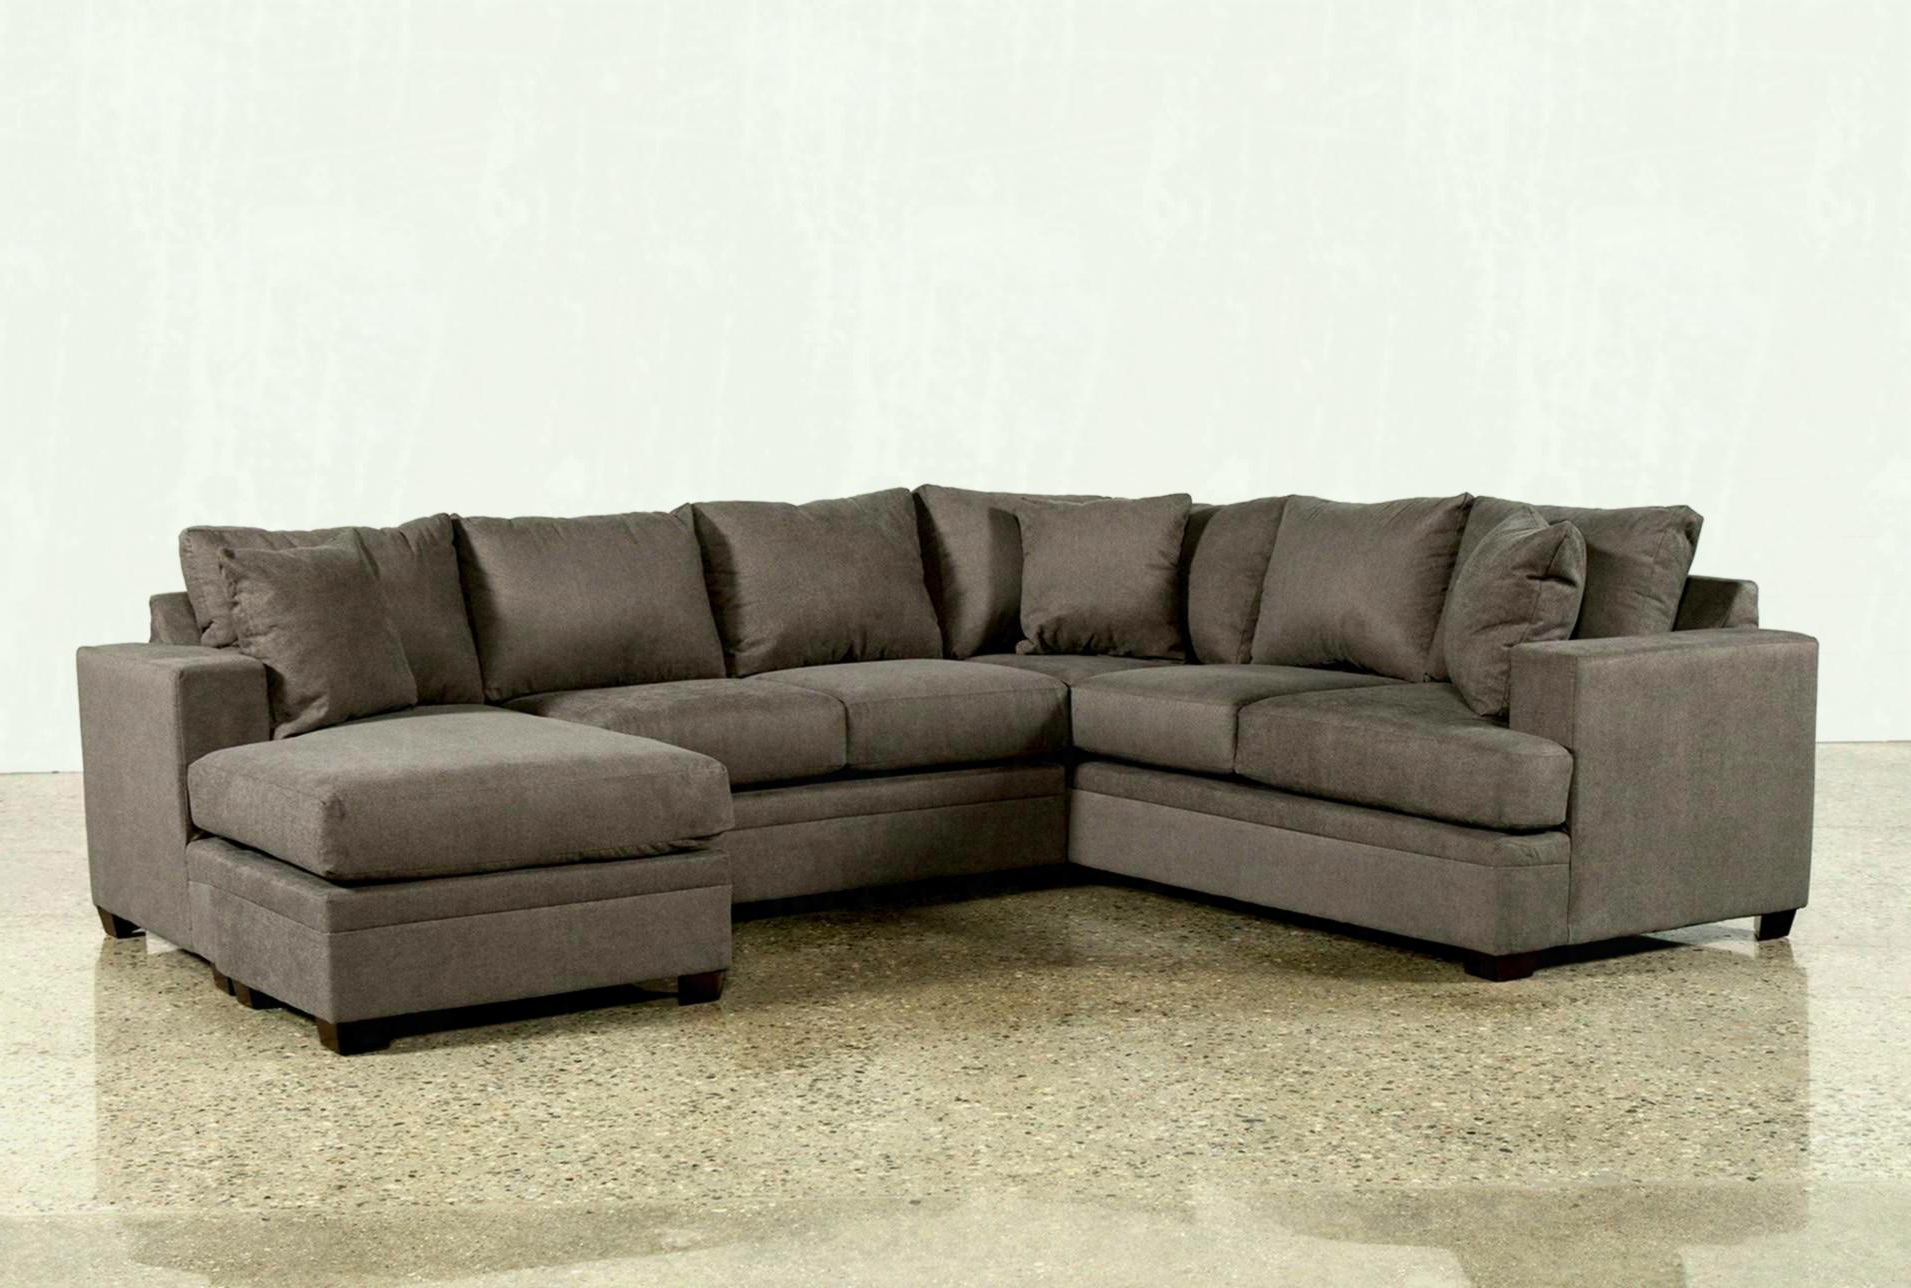 Added To Cart Kerri Piece Sectional W Raf Chaise Living Spaces Throughout Well Liked Lucy Dark Grey 2 Piece Sectionals With Laf Chaise (View 1 of 20)